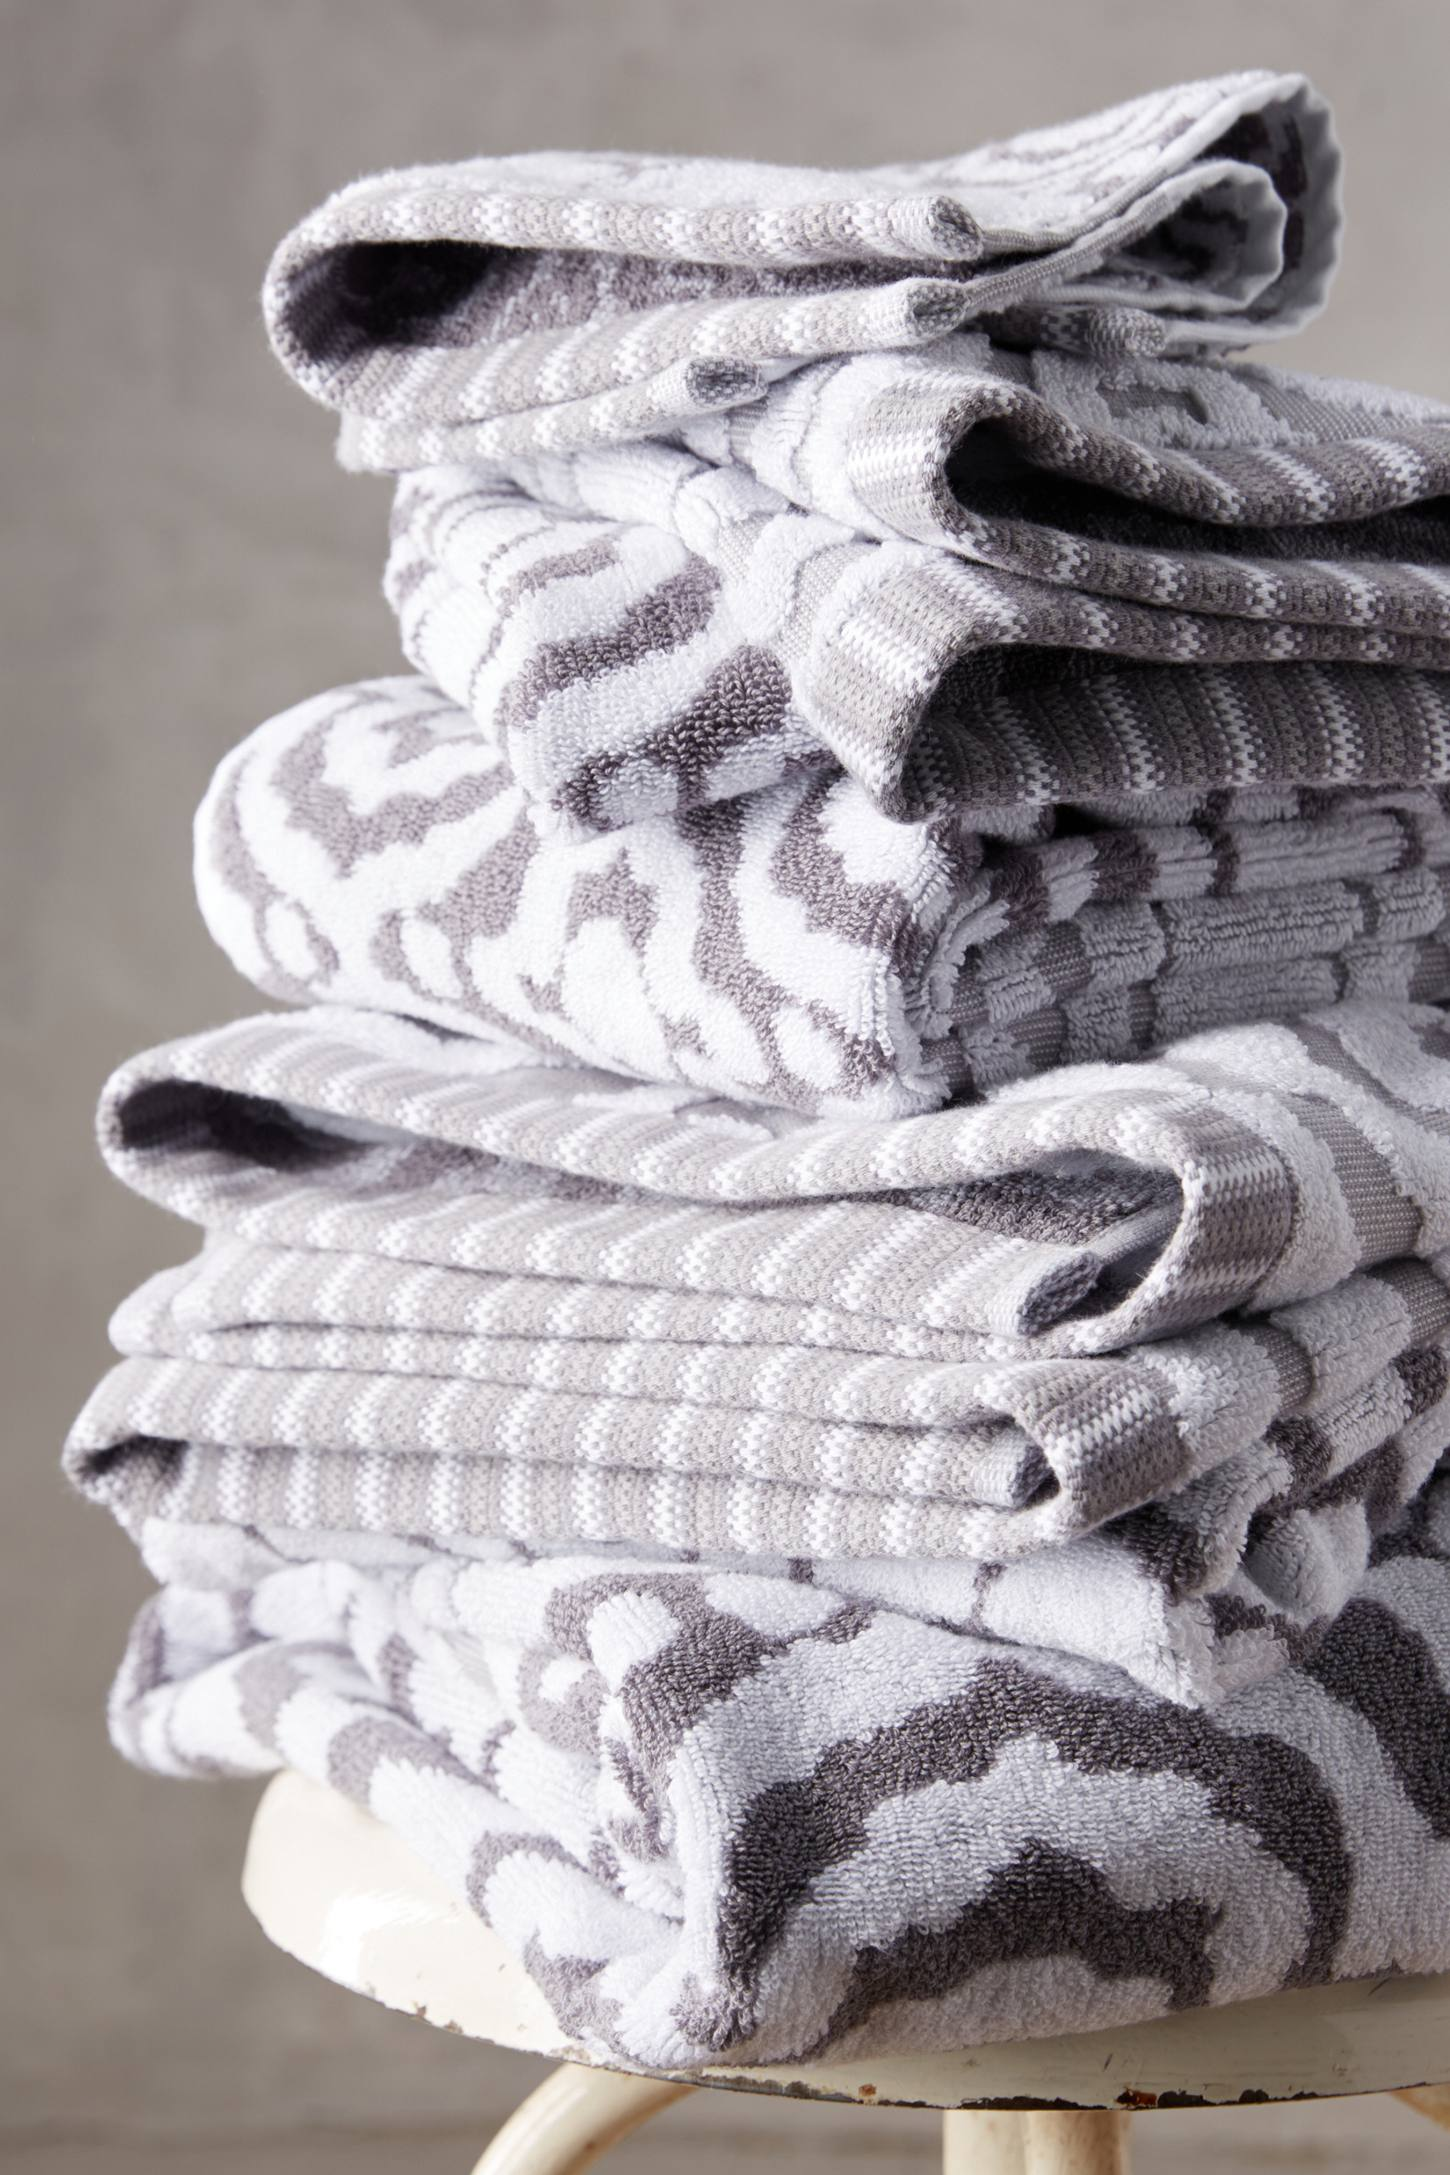 Slide View: 1: Yarn-Dyed Ruana Towel Collection